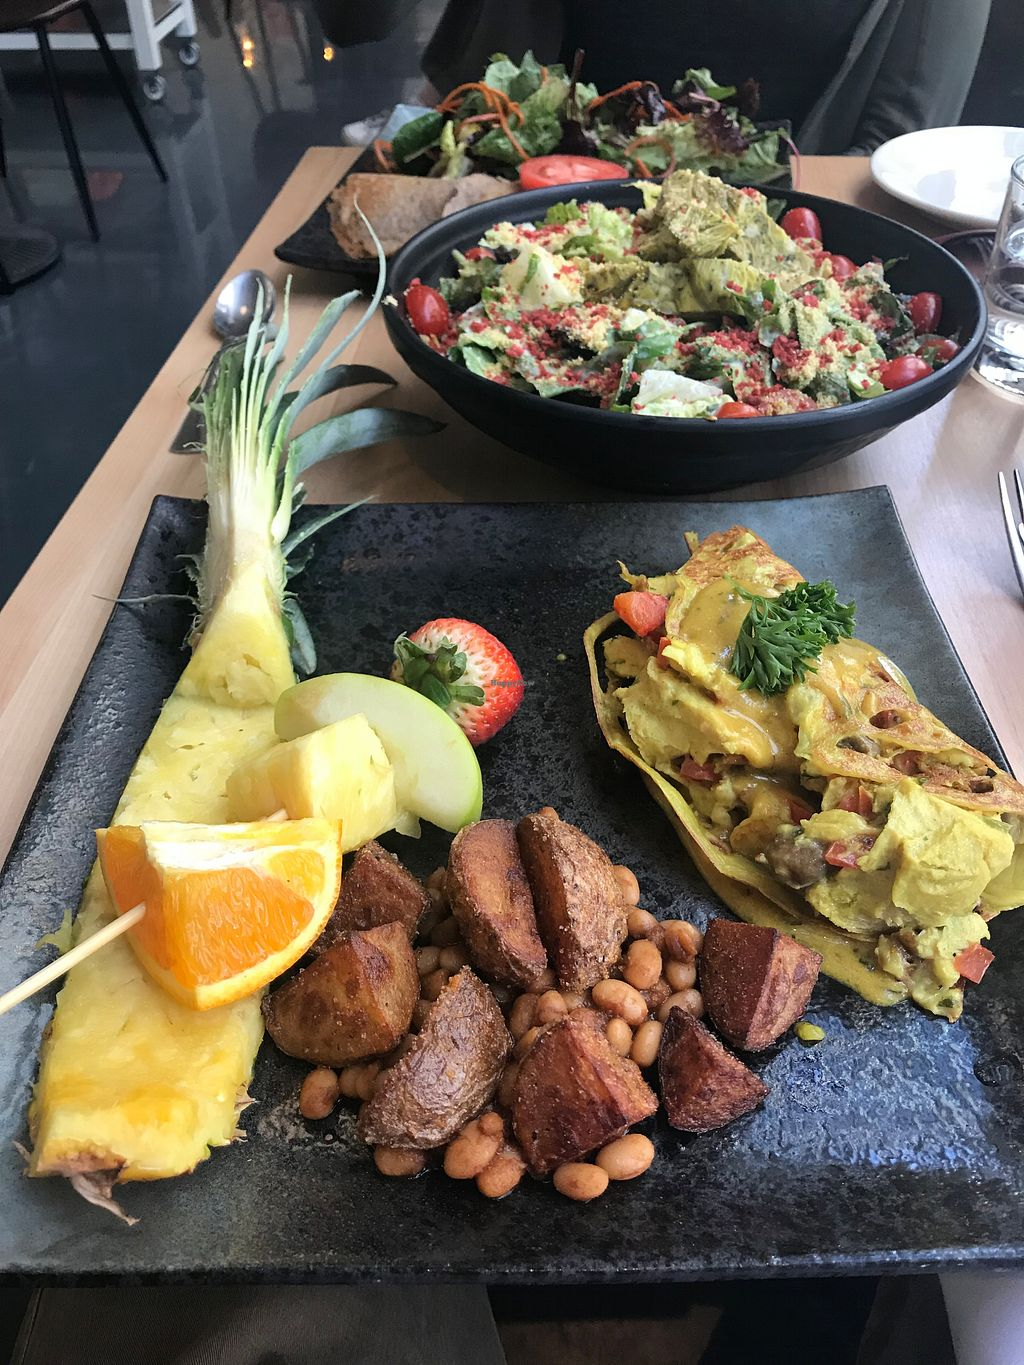 """Photo of Invitation V Vegan Bistro  by <a href=""""/members/profile/TheVeganBlend"""">TheVeganBlend</a> <br/>Omelet and Caesar Salad  <br/> May 13, 2018  - <a href='/contact/abuse/image/38634/398945'>Report</a>"""